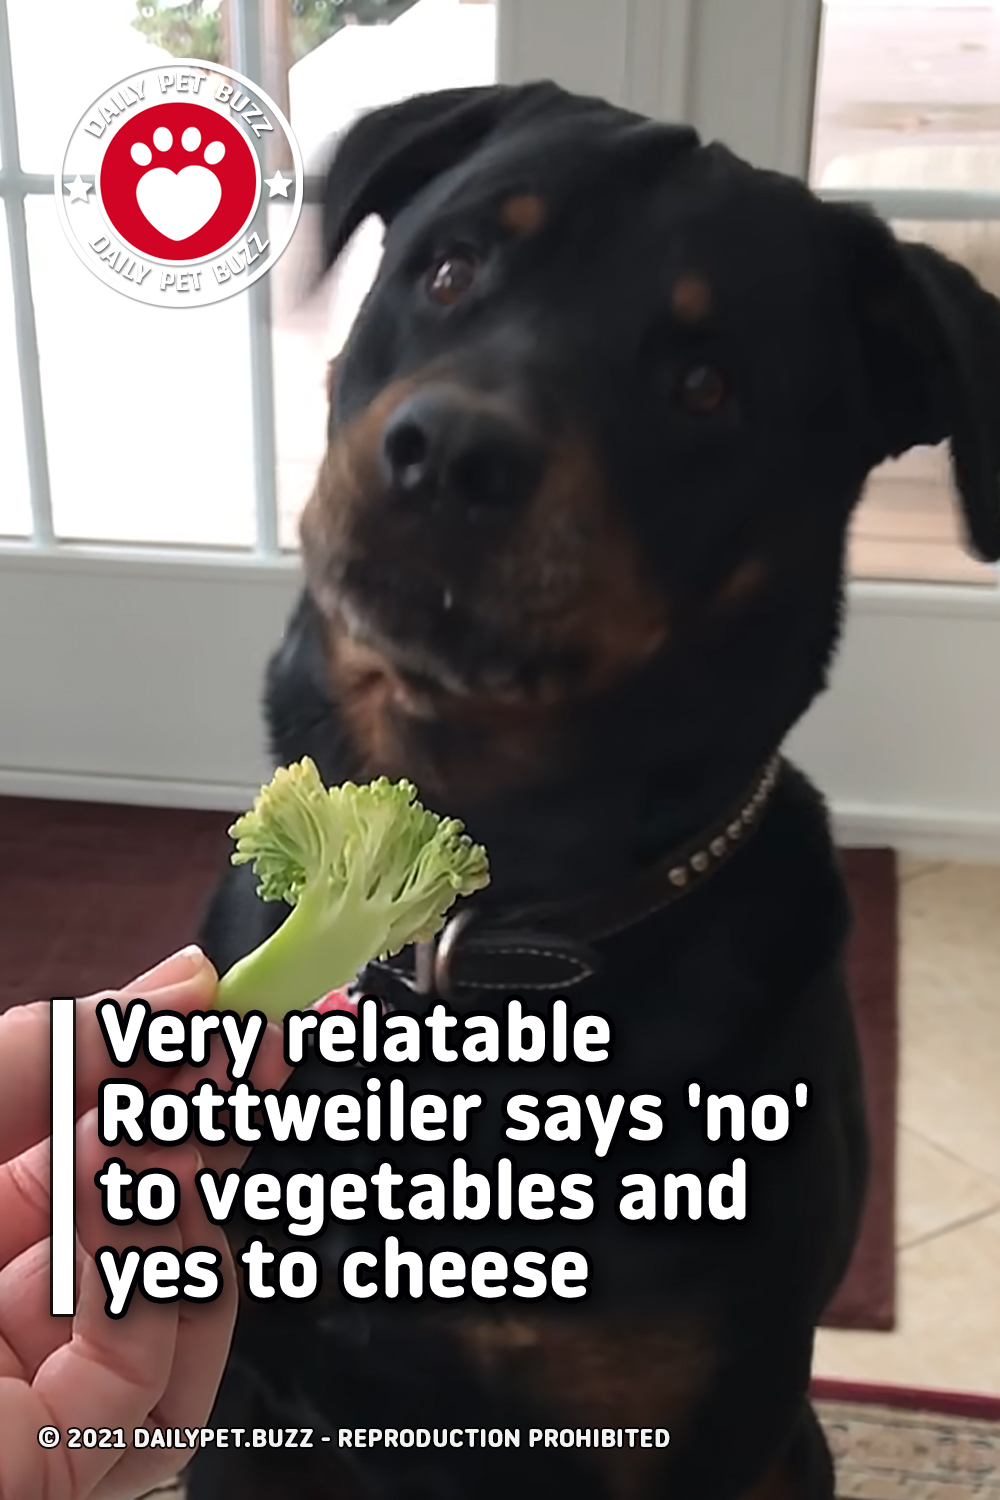 Very relatable Rottweiler says \'no\' to vegetables and yes to cheese